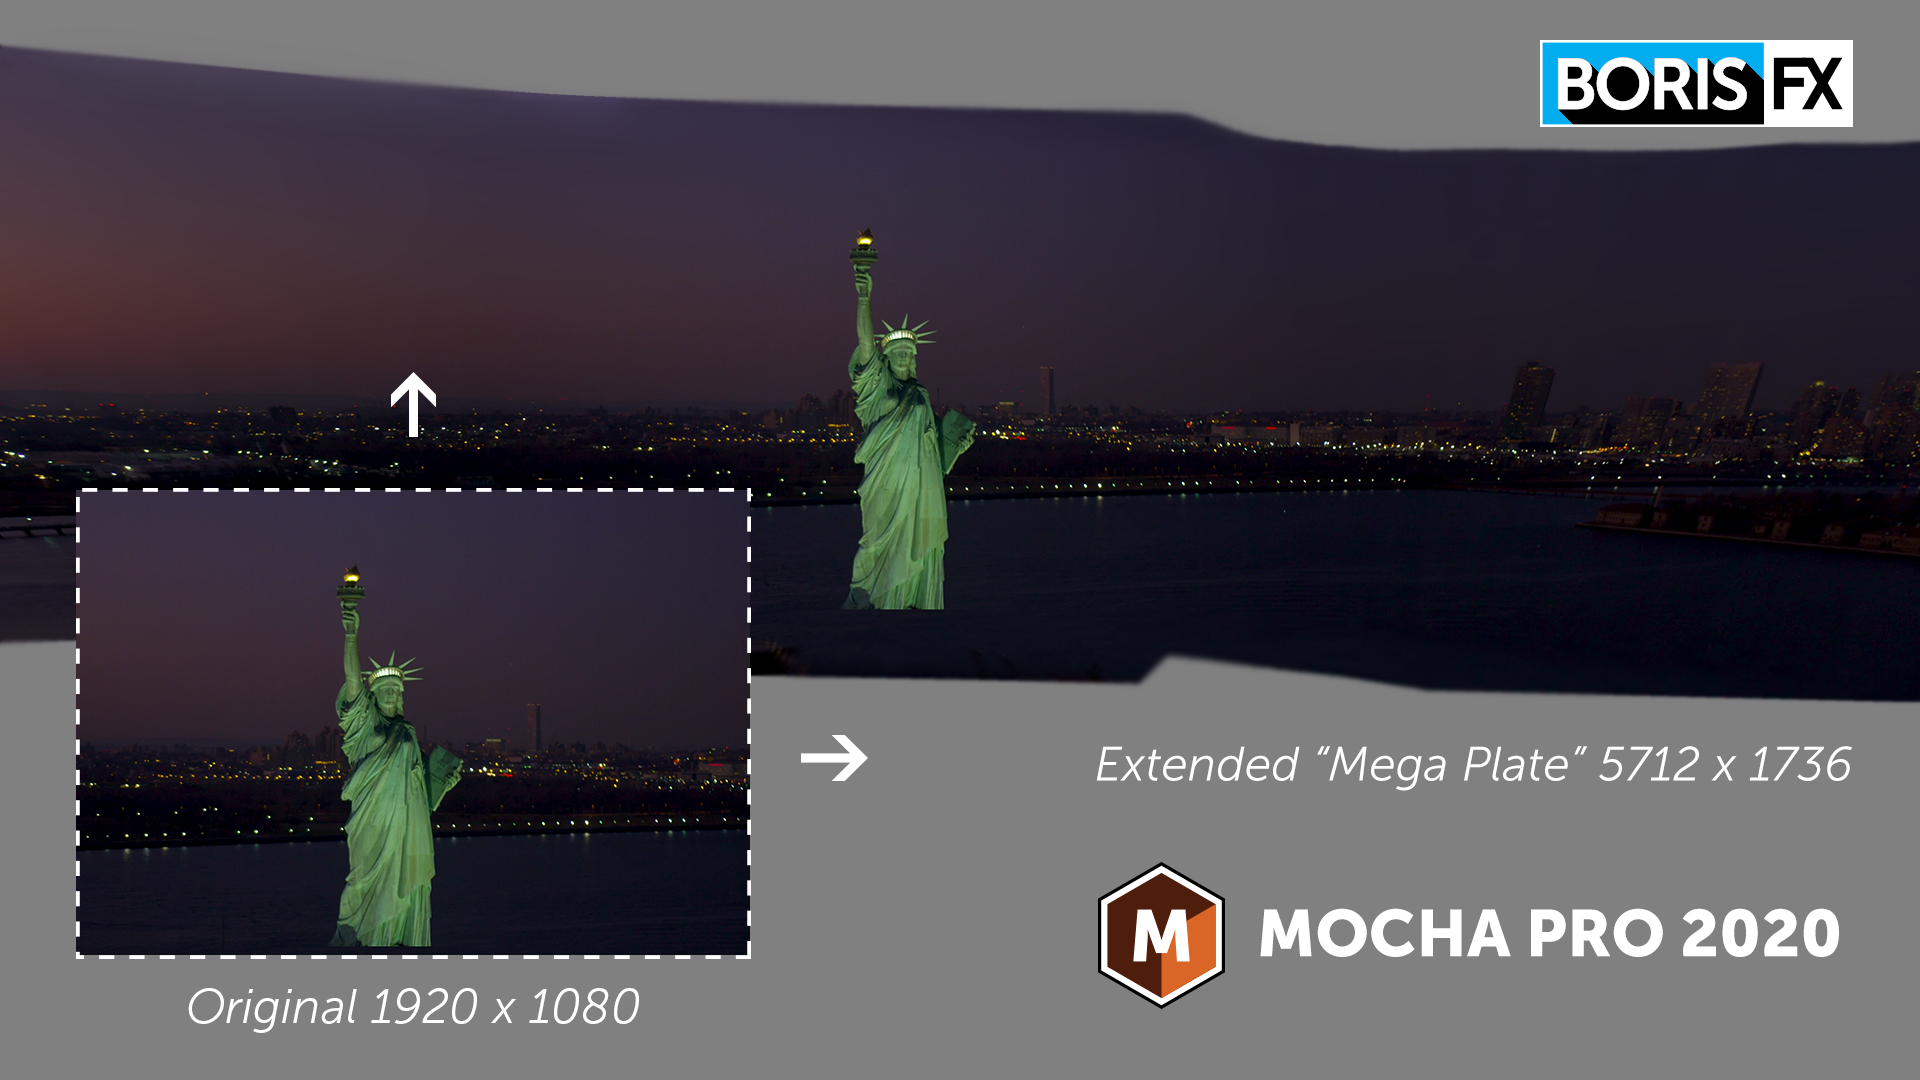 Example of extended stitched workflow using Boris FX Mocha Pro 2020's new Mega Plate module